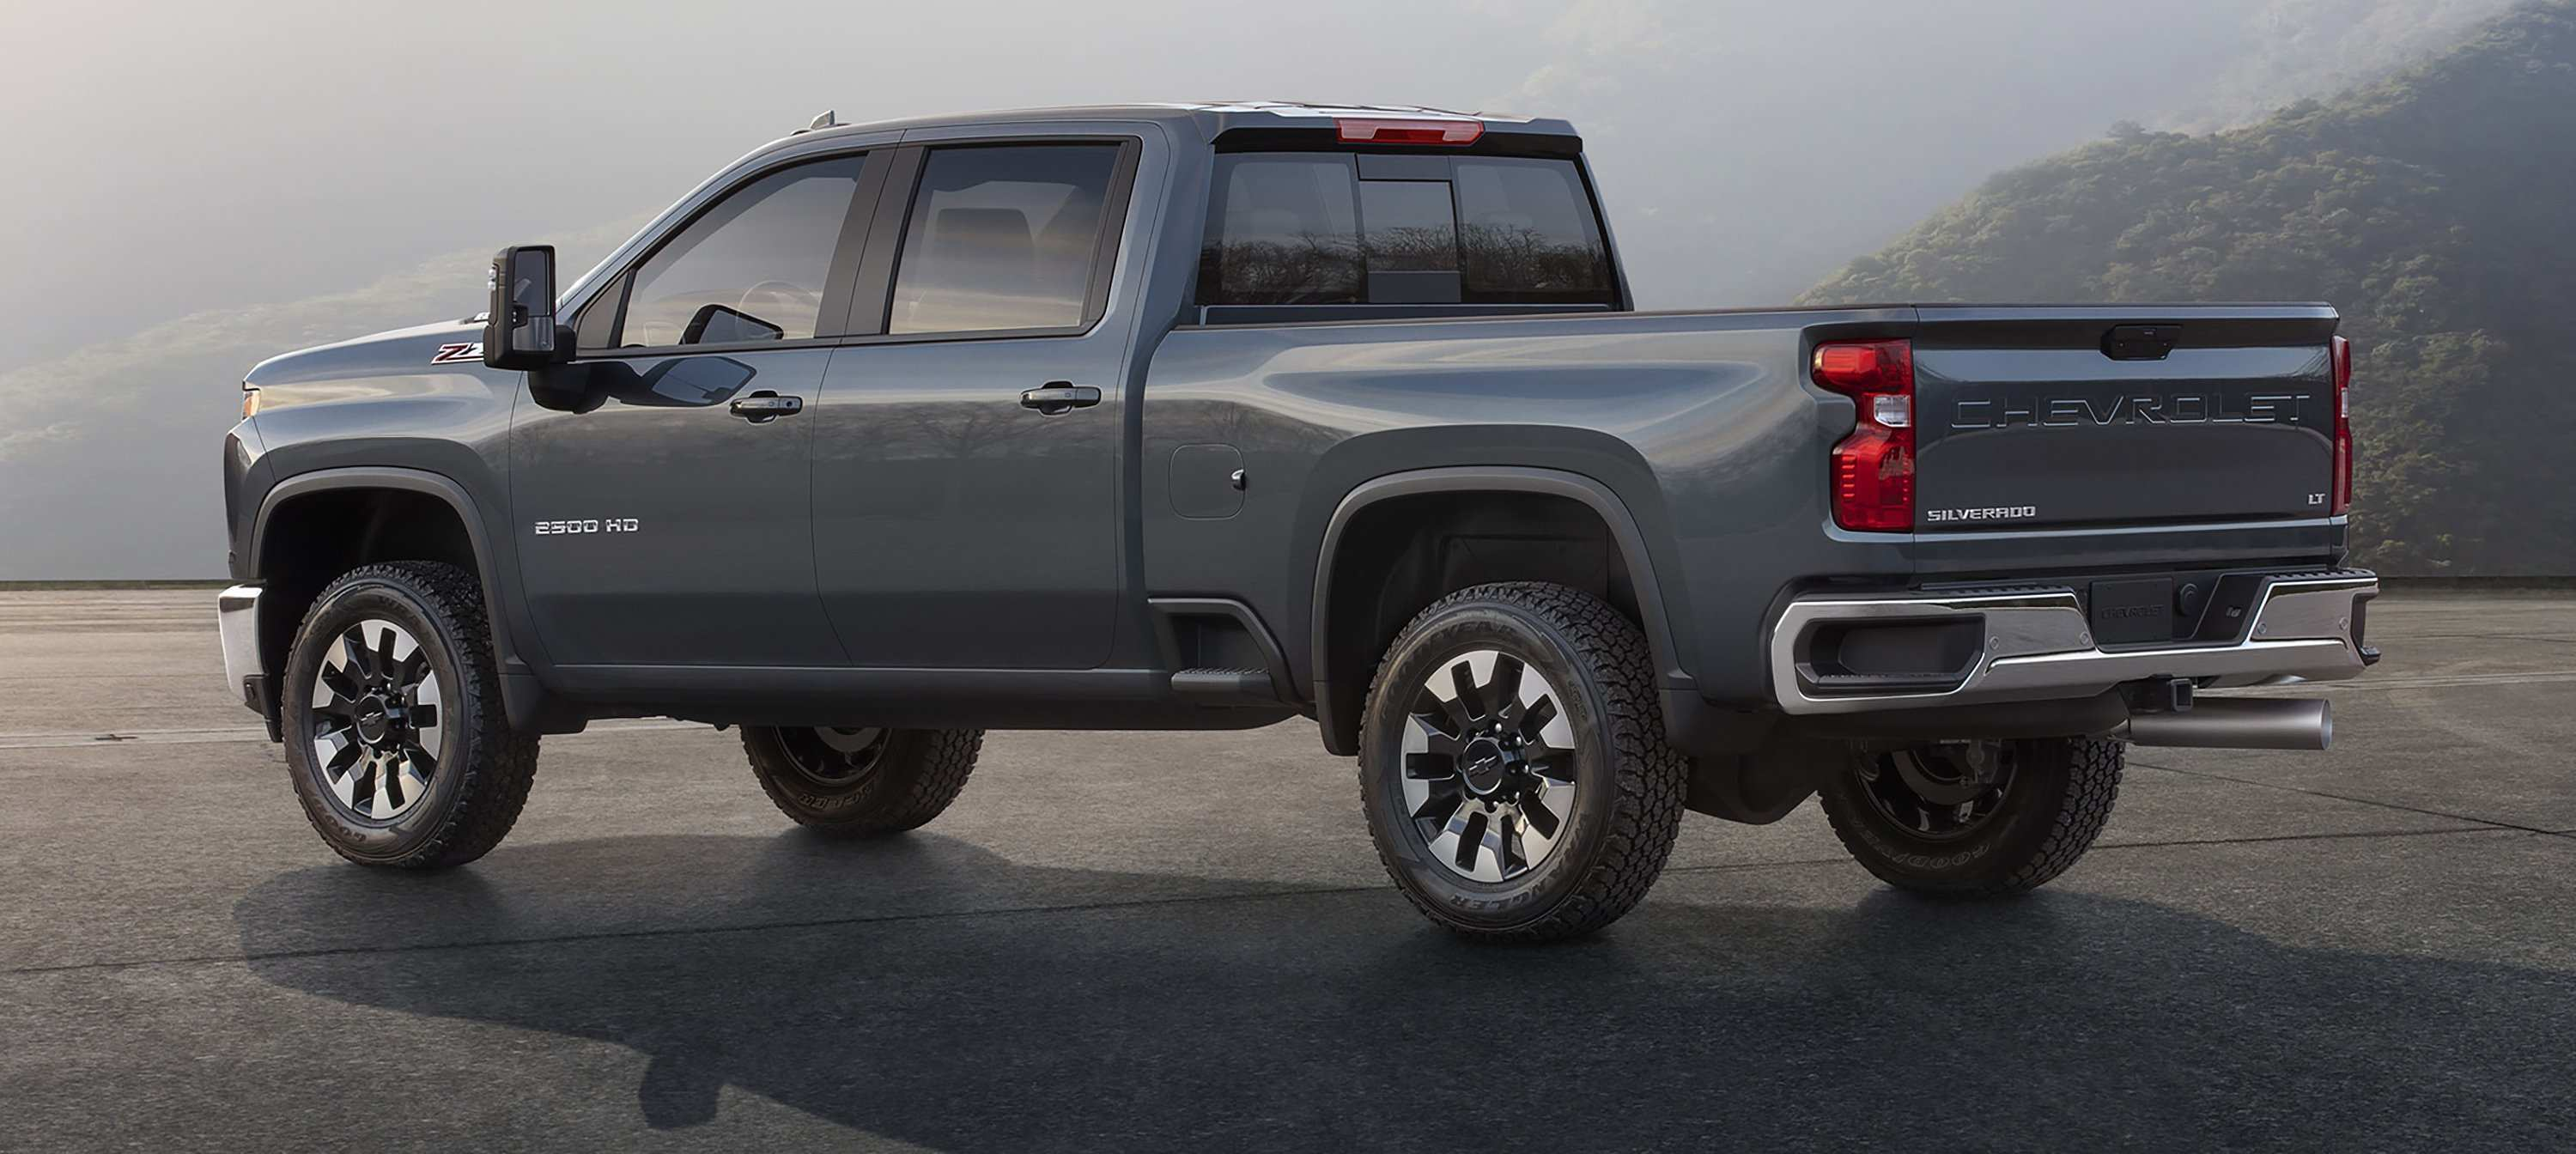 85 Best Review 2020 Chevy Silverado 1500 2500 Redesign and Concept by 2020 Chevy Silverado 1500 2500